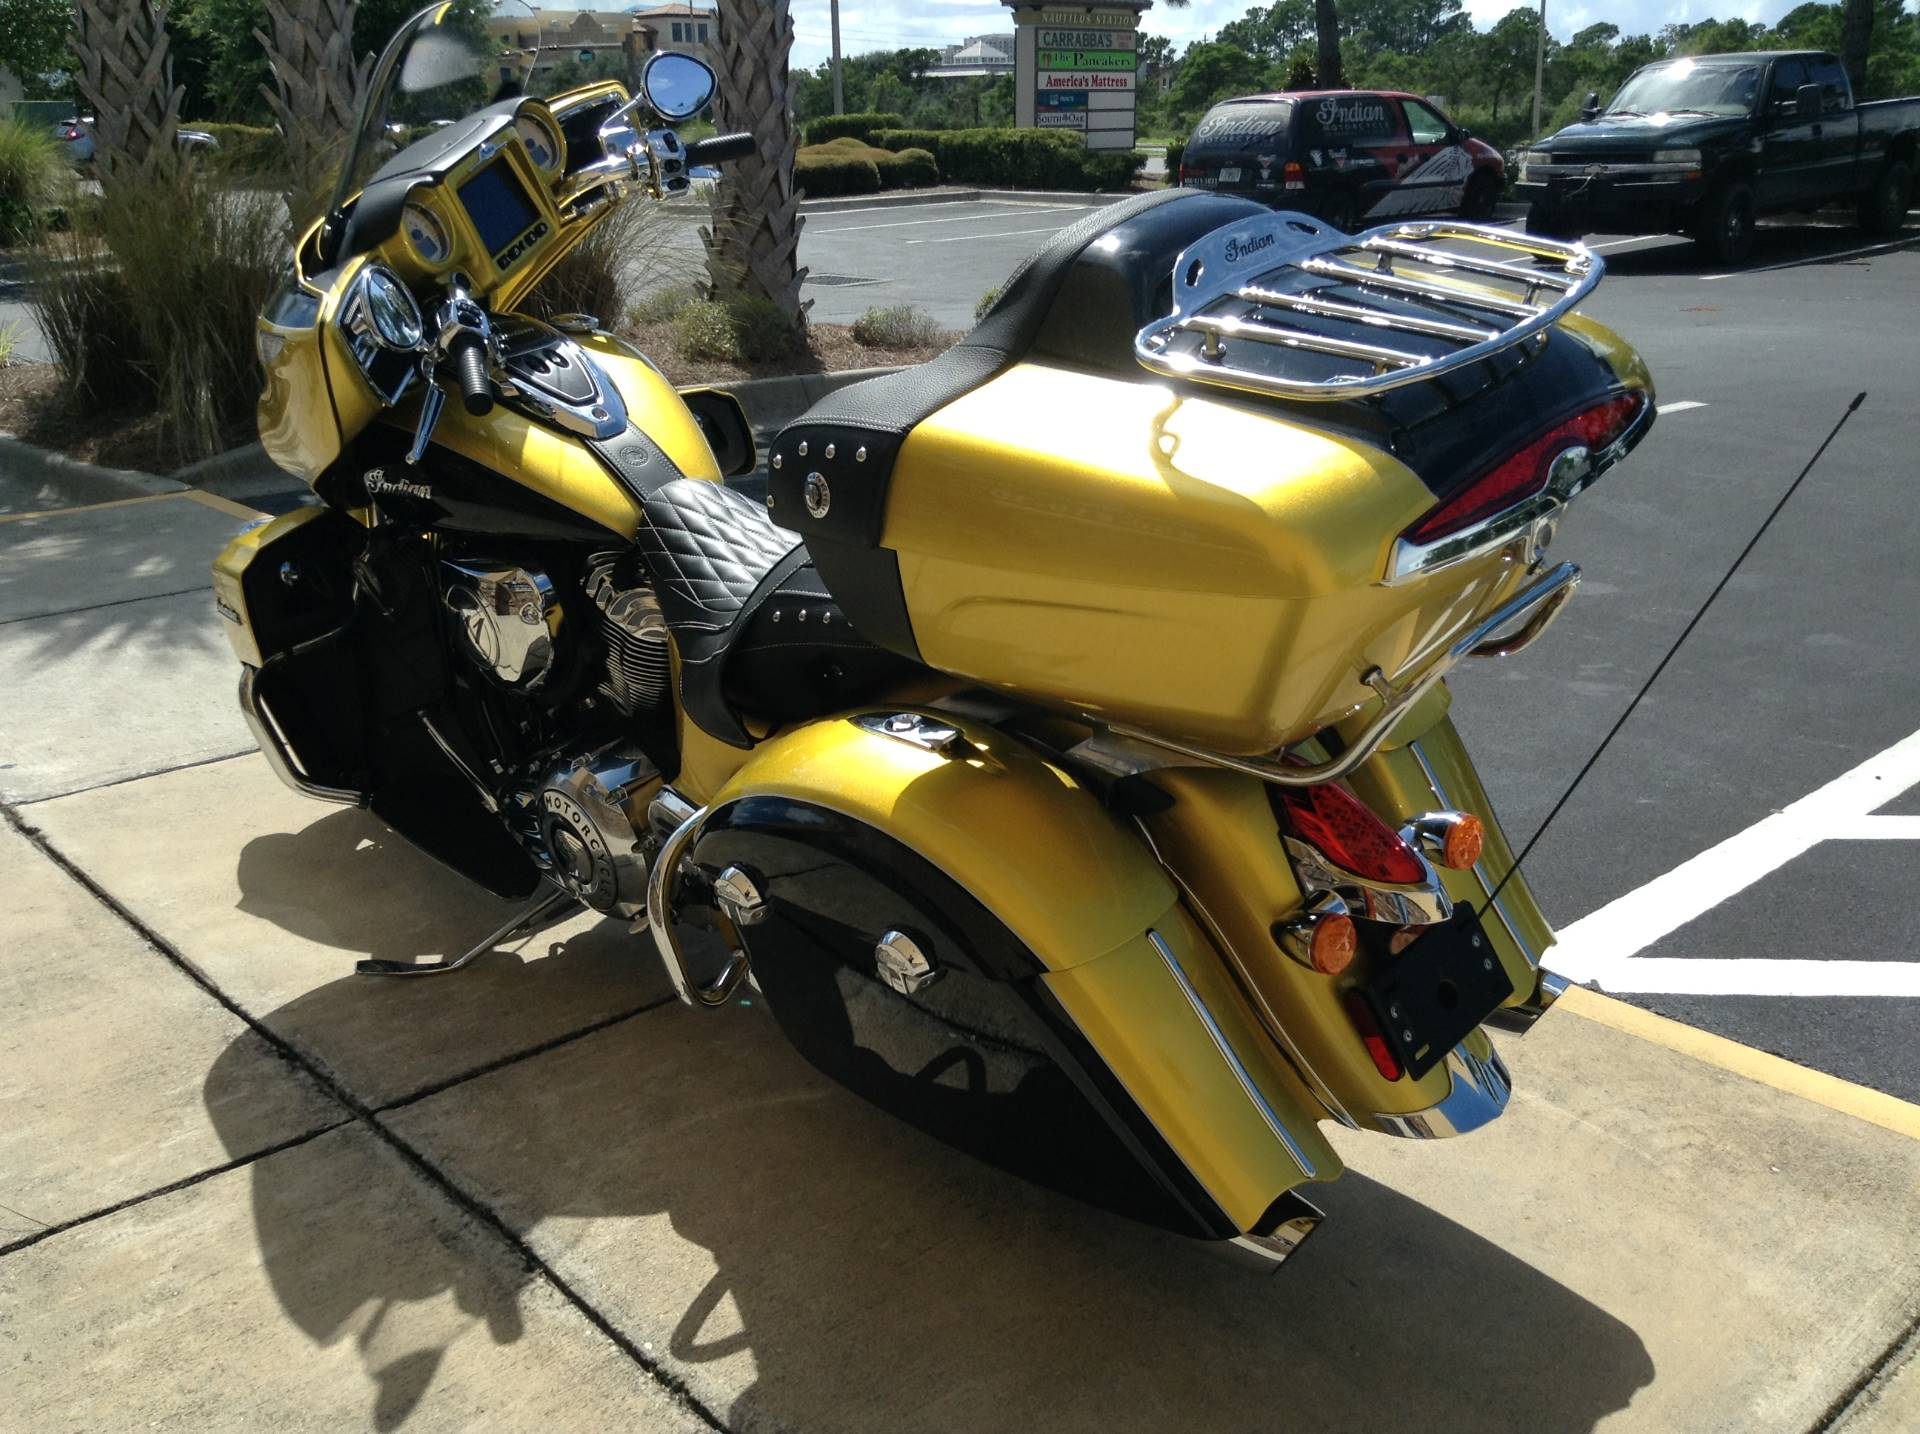 2018 Indian ROAD MASTER ICON SERIES in Panama City Beach, Florida